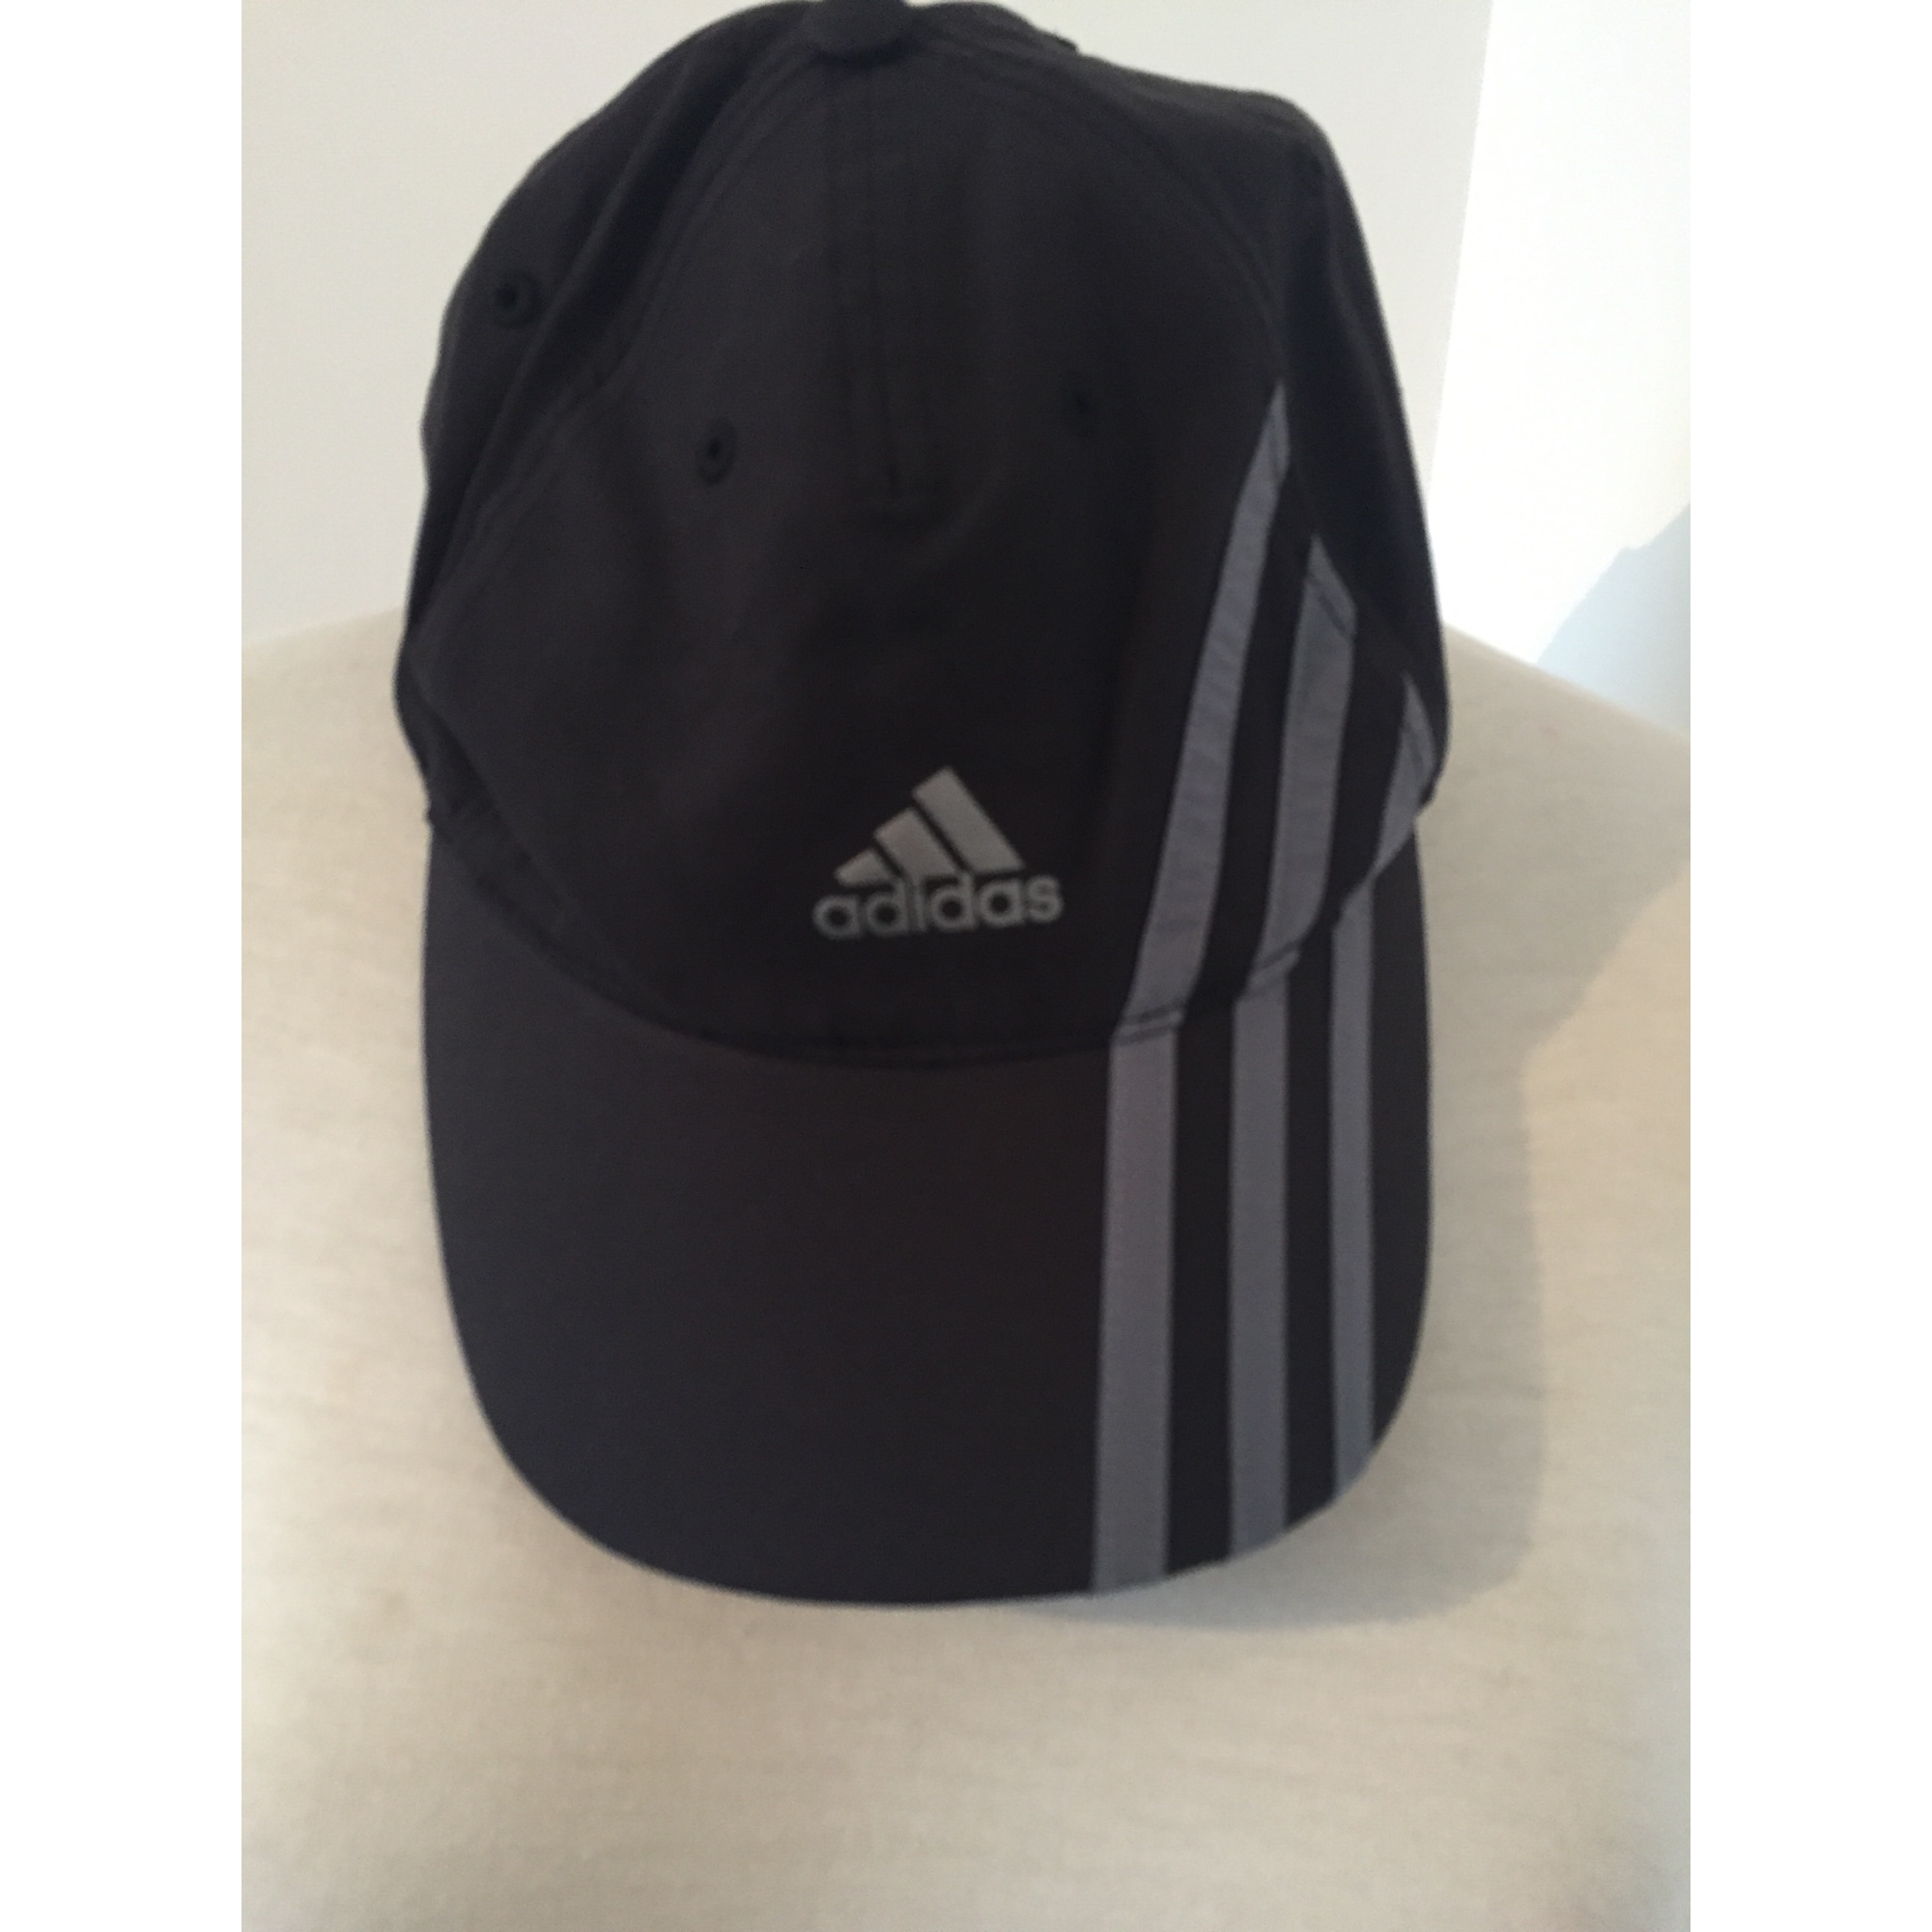 cheapest price buy cheap for whole family Fille Casquette Adidas Adidas Casquette Noir nwPZN8X0Ok